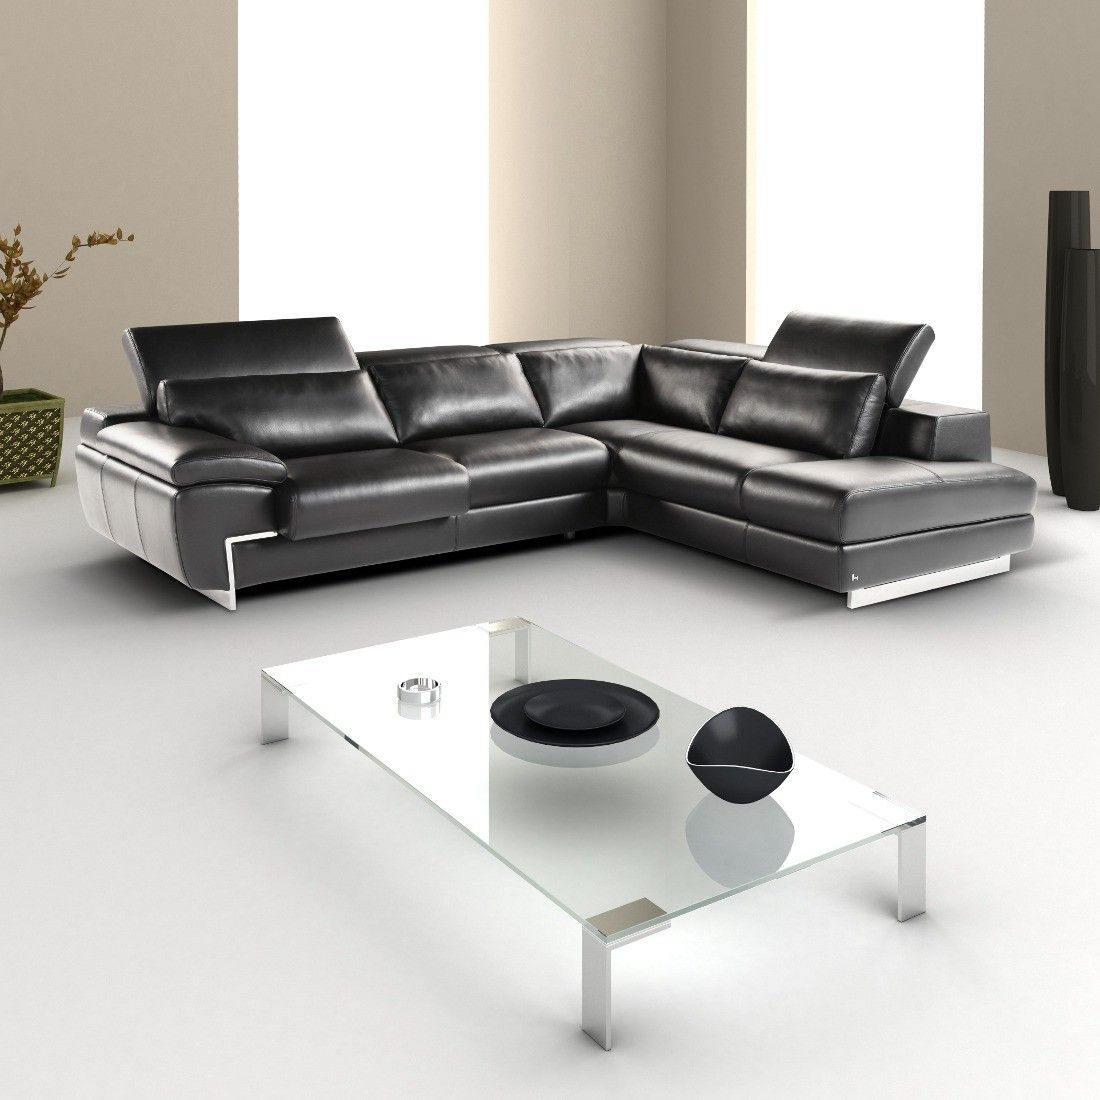 Leather Sofa Repair Nyc Kidney Shaped With Fringe Italian Sectional Set By Nicoletti Italia